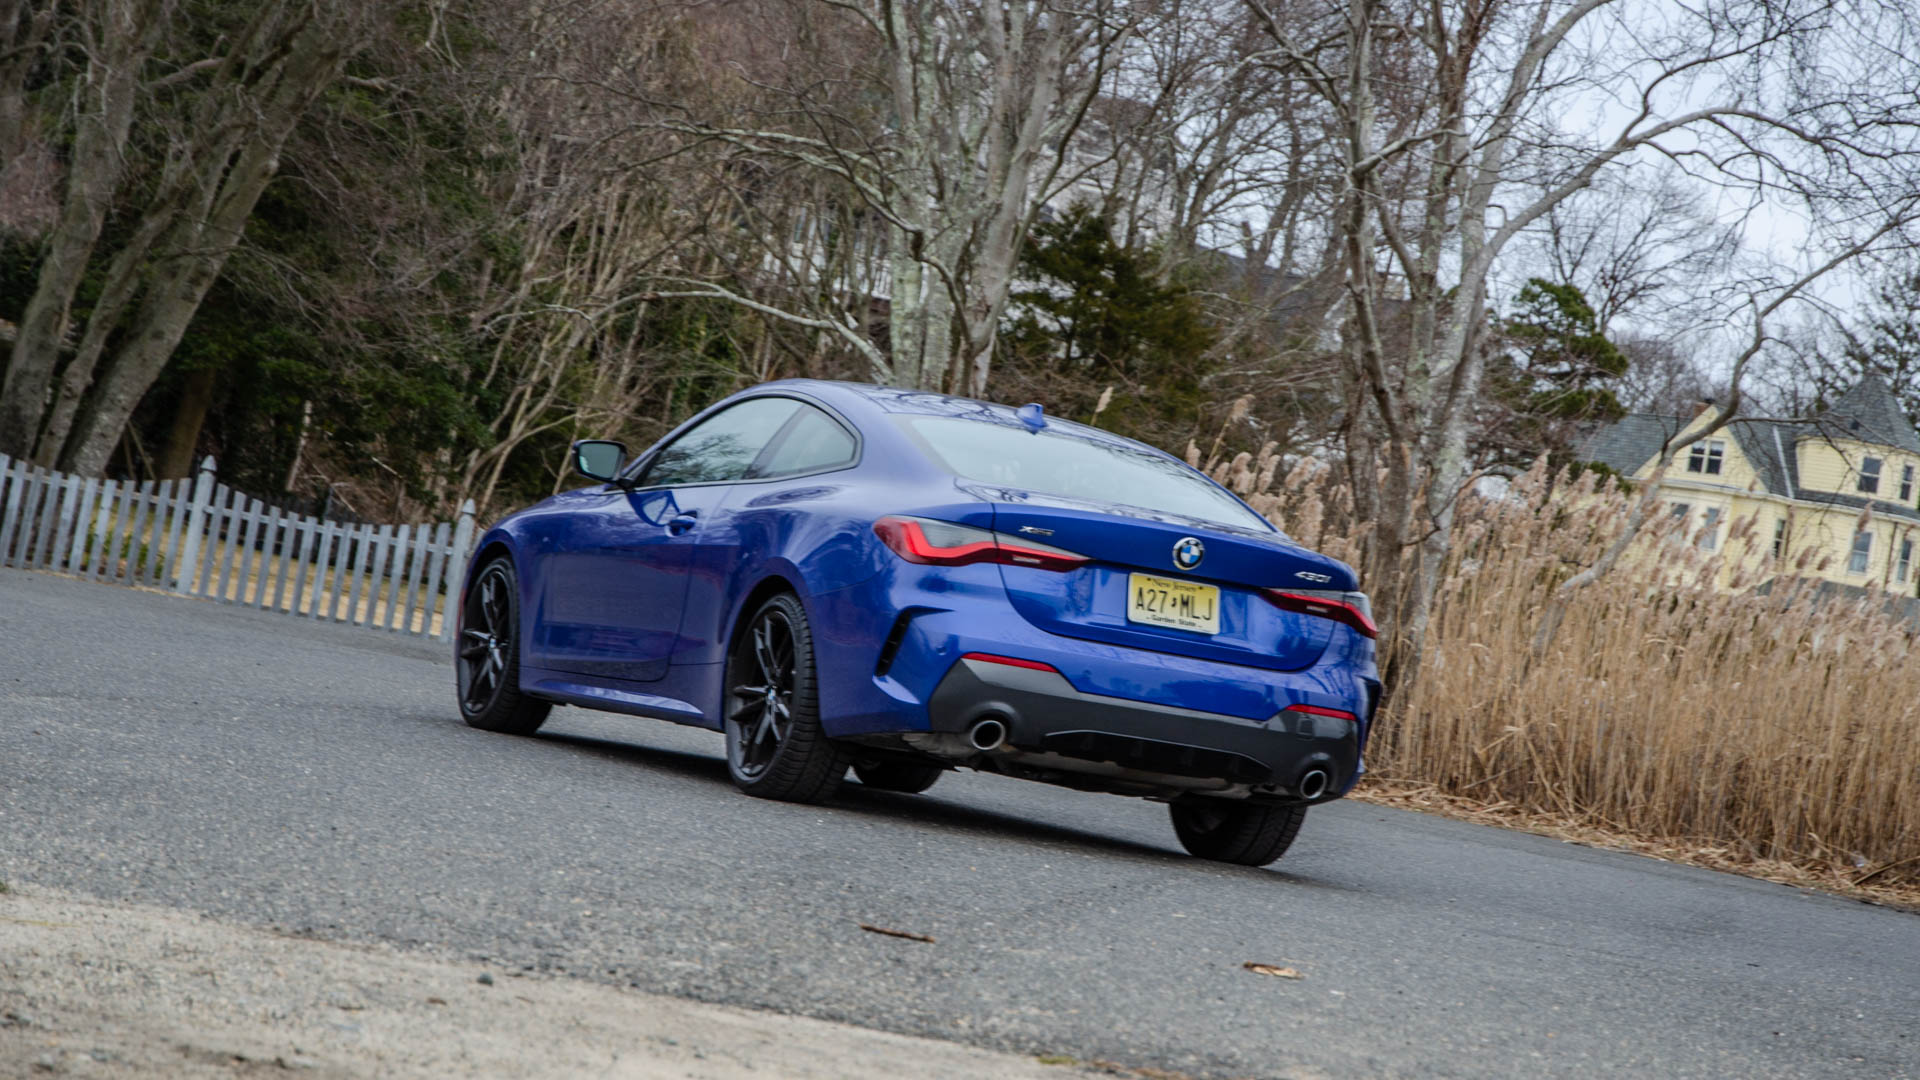 TEST DRIVE: 2021 BMW 430i xDrive Coupe — Exceeds Expectations